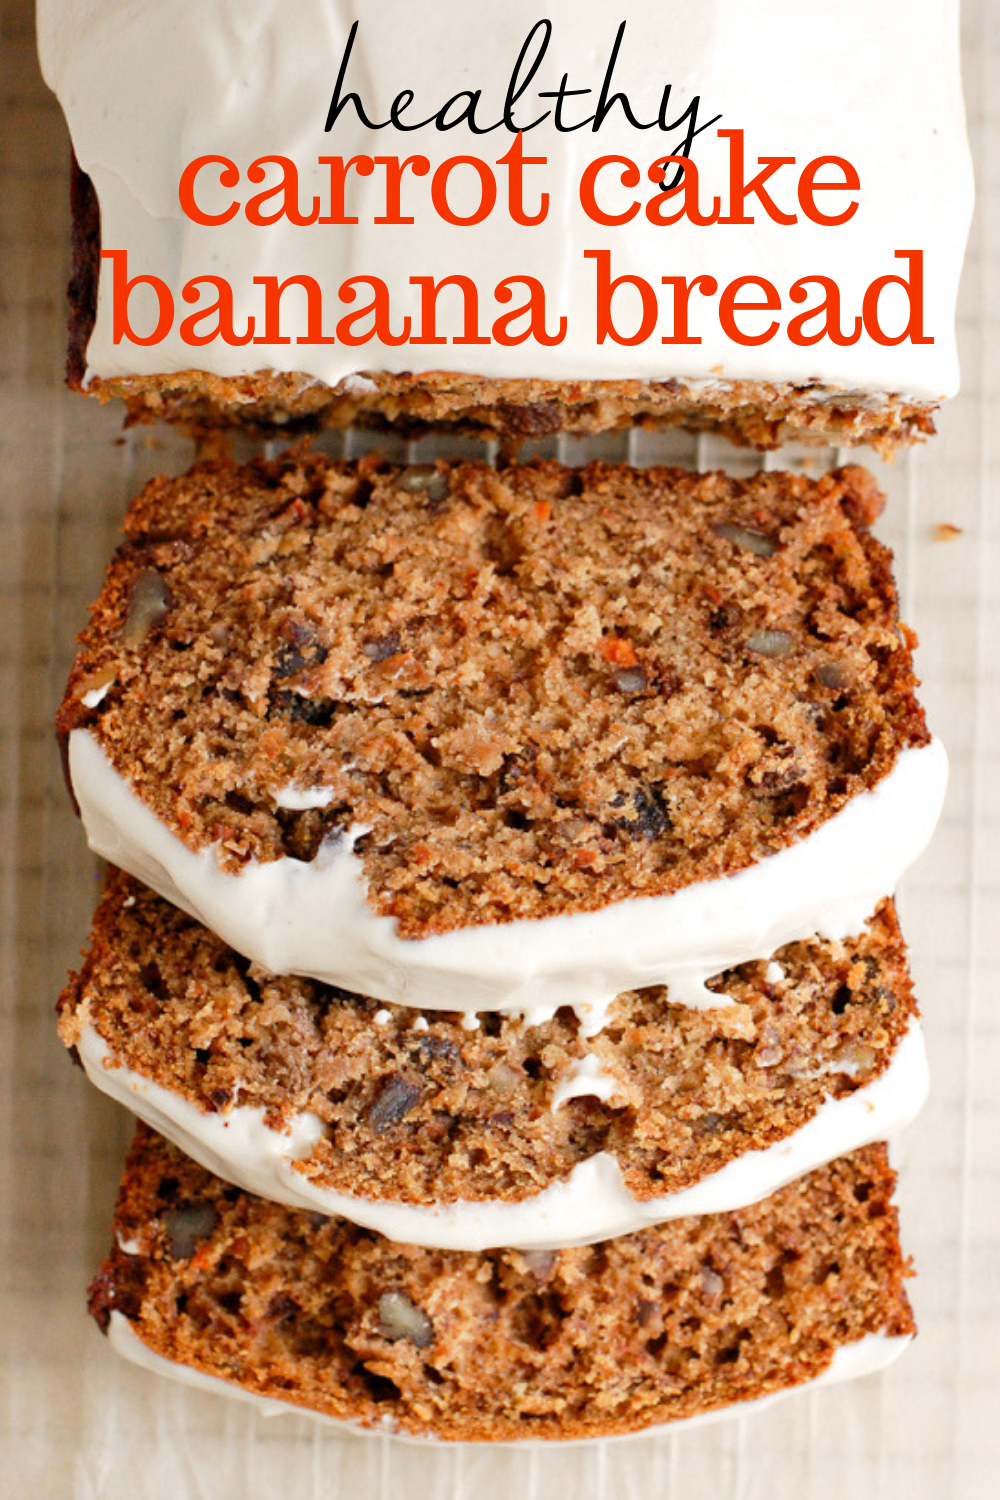 Carrot Cake Banana Bread | Erin Lives Whole